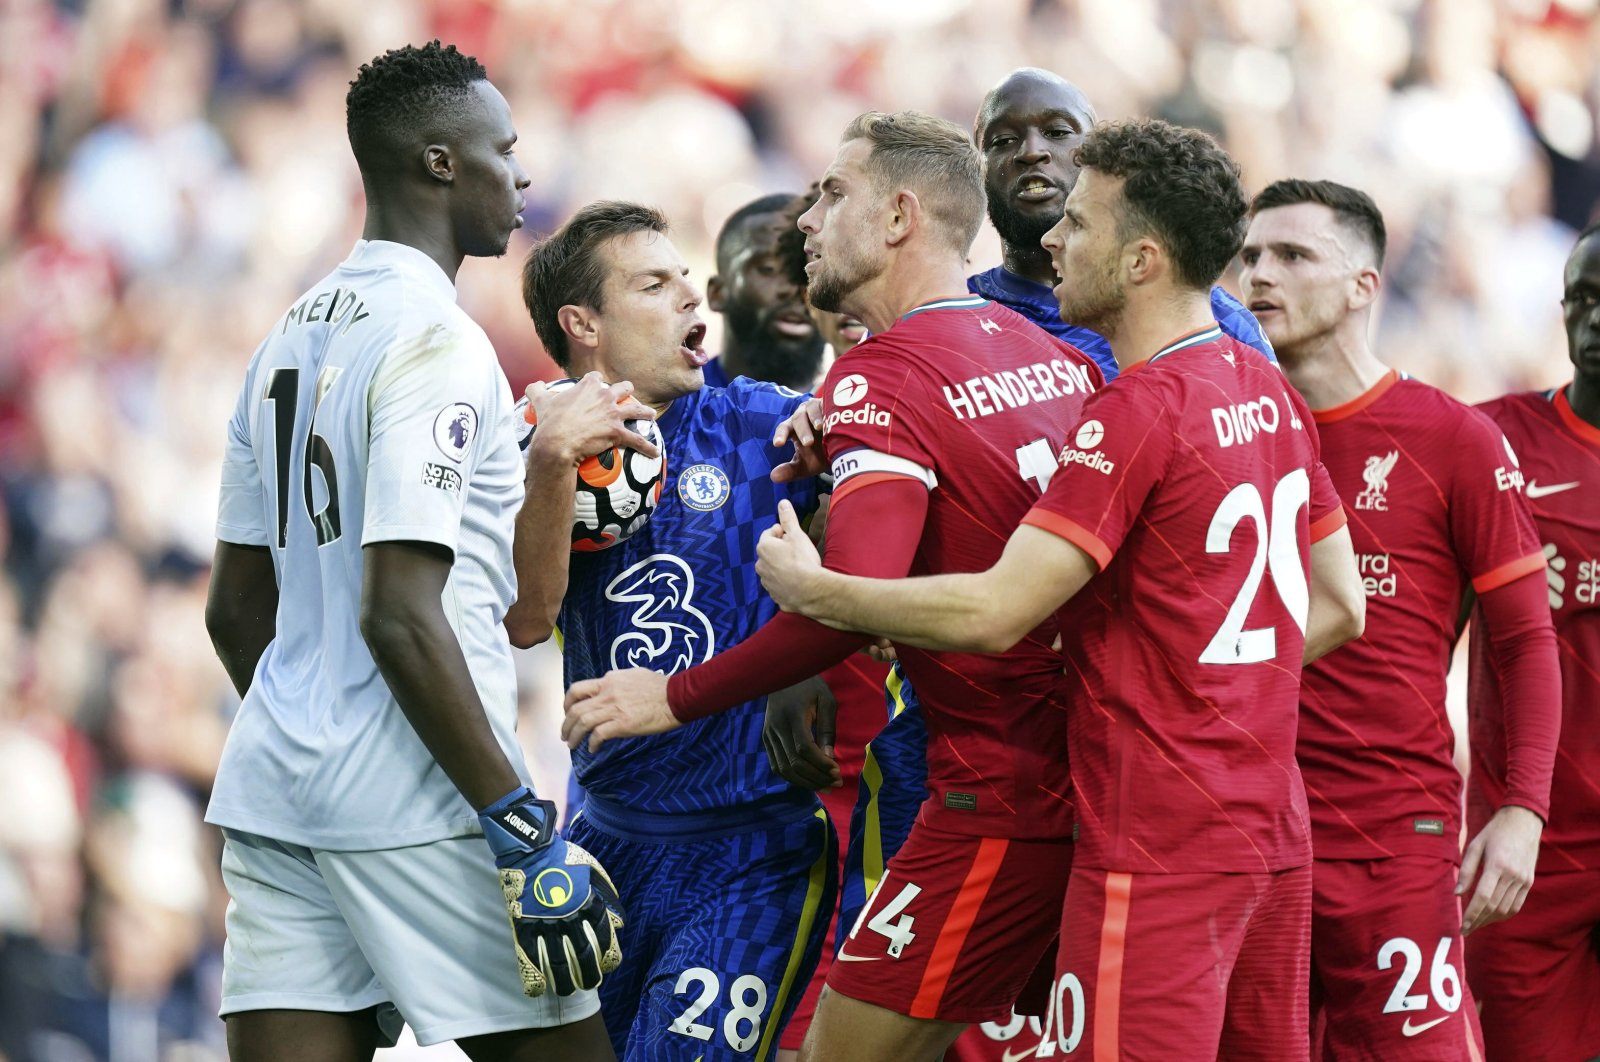 Chelsea's Cesar Azpilicueta (C-L), and Liverpool's Jordan Henderson (C-R), clash following Liverpool's equalizer during the English Premier League match between Liverpool and Chelsea at Anfield, Liverpool, U.K., Aug. 28, 2021. (AP Photo)